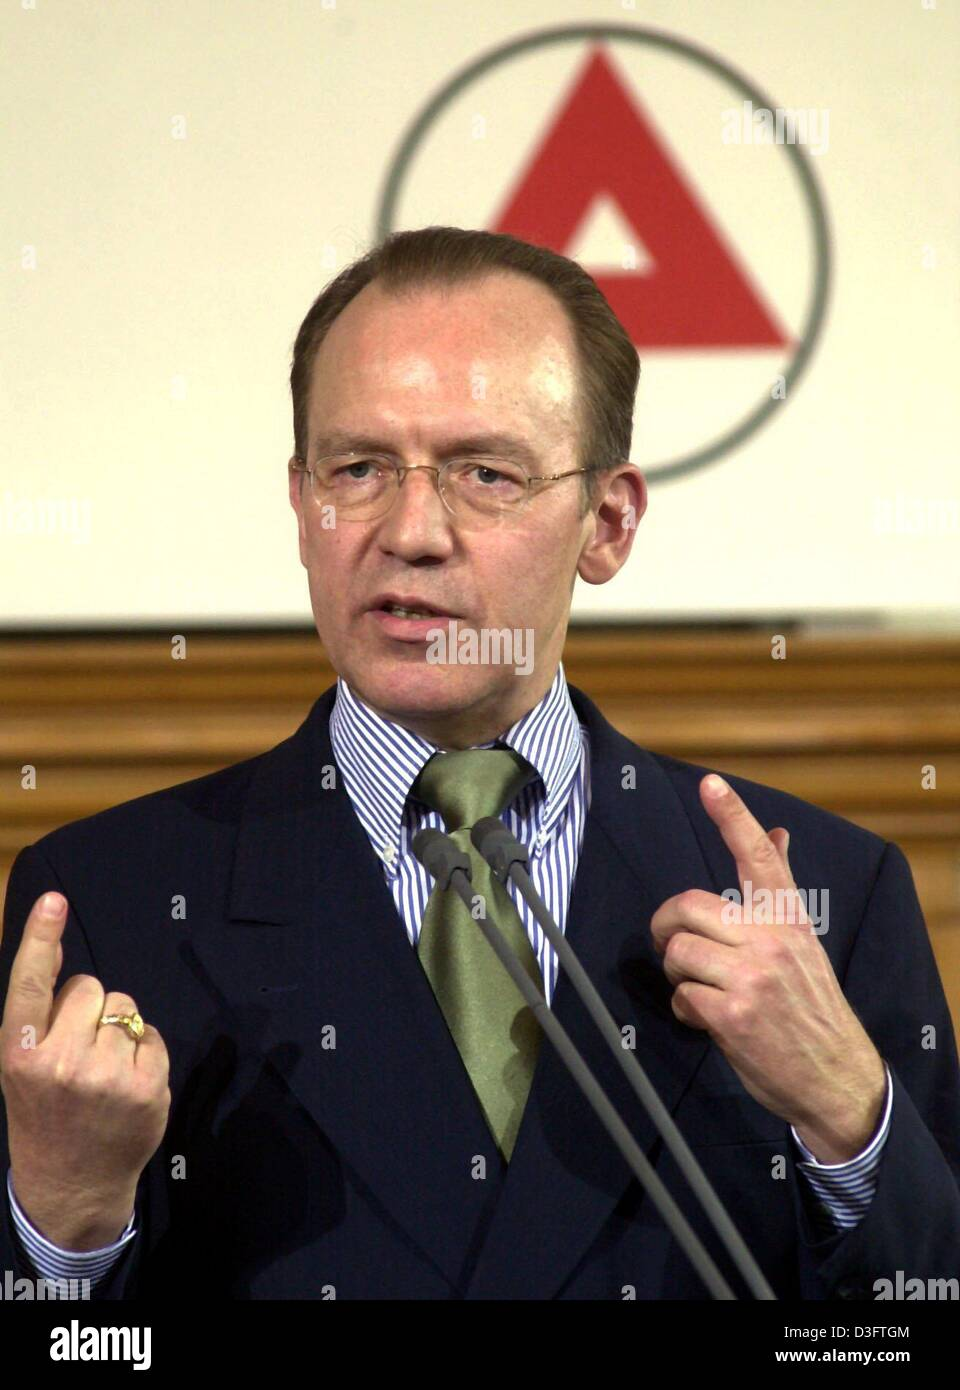 (dpa files) - Florian Gerster, chairman of the board of directors of the German federal labour office, pictured - Stock Image